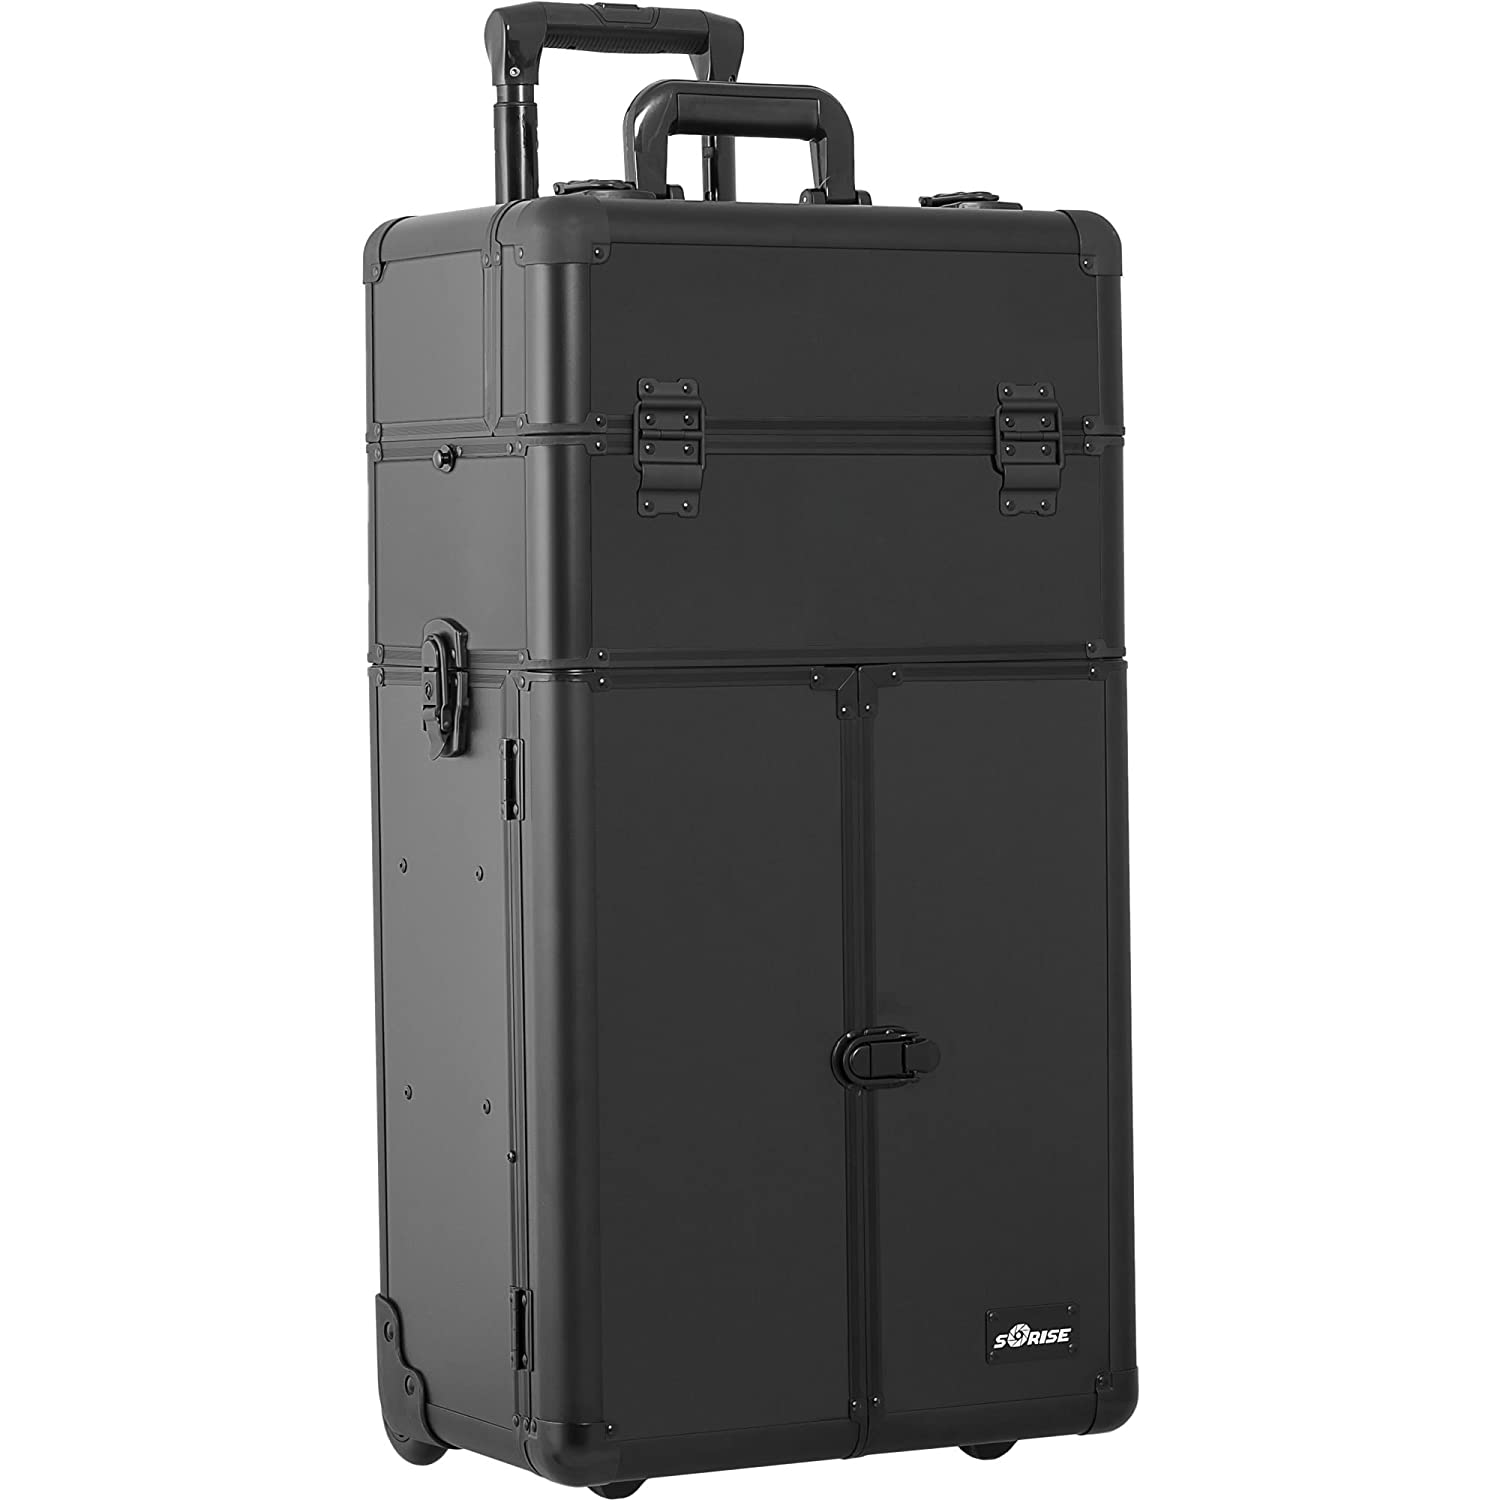 SUNRISE Makeup Case on Wheels 2 in 1 Professional Organizer I3166, French Doors, 4 Slide Trays and 3 Drawers, Mirror with Shoulder Strap, Black Matte